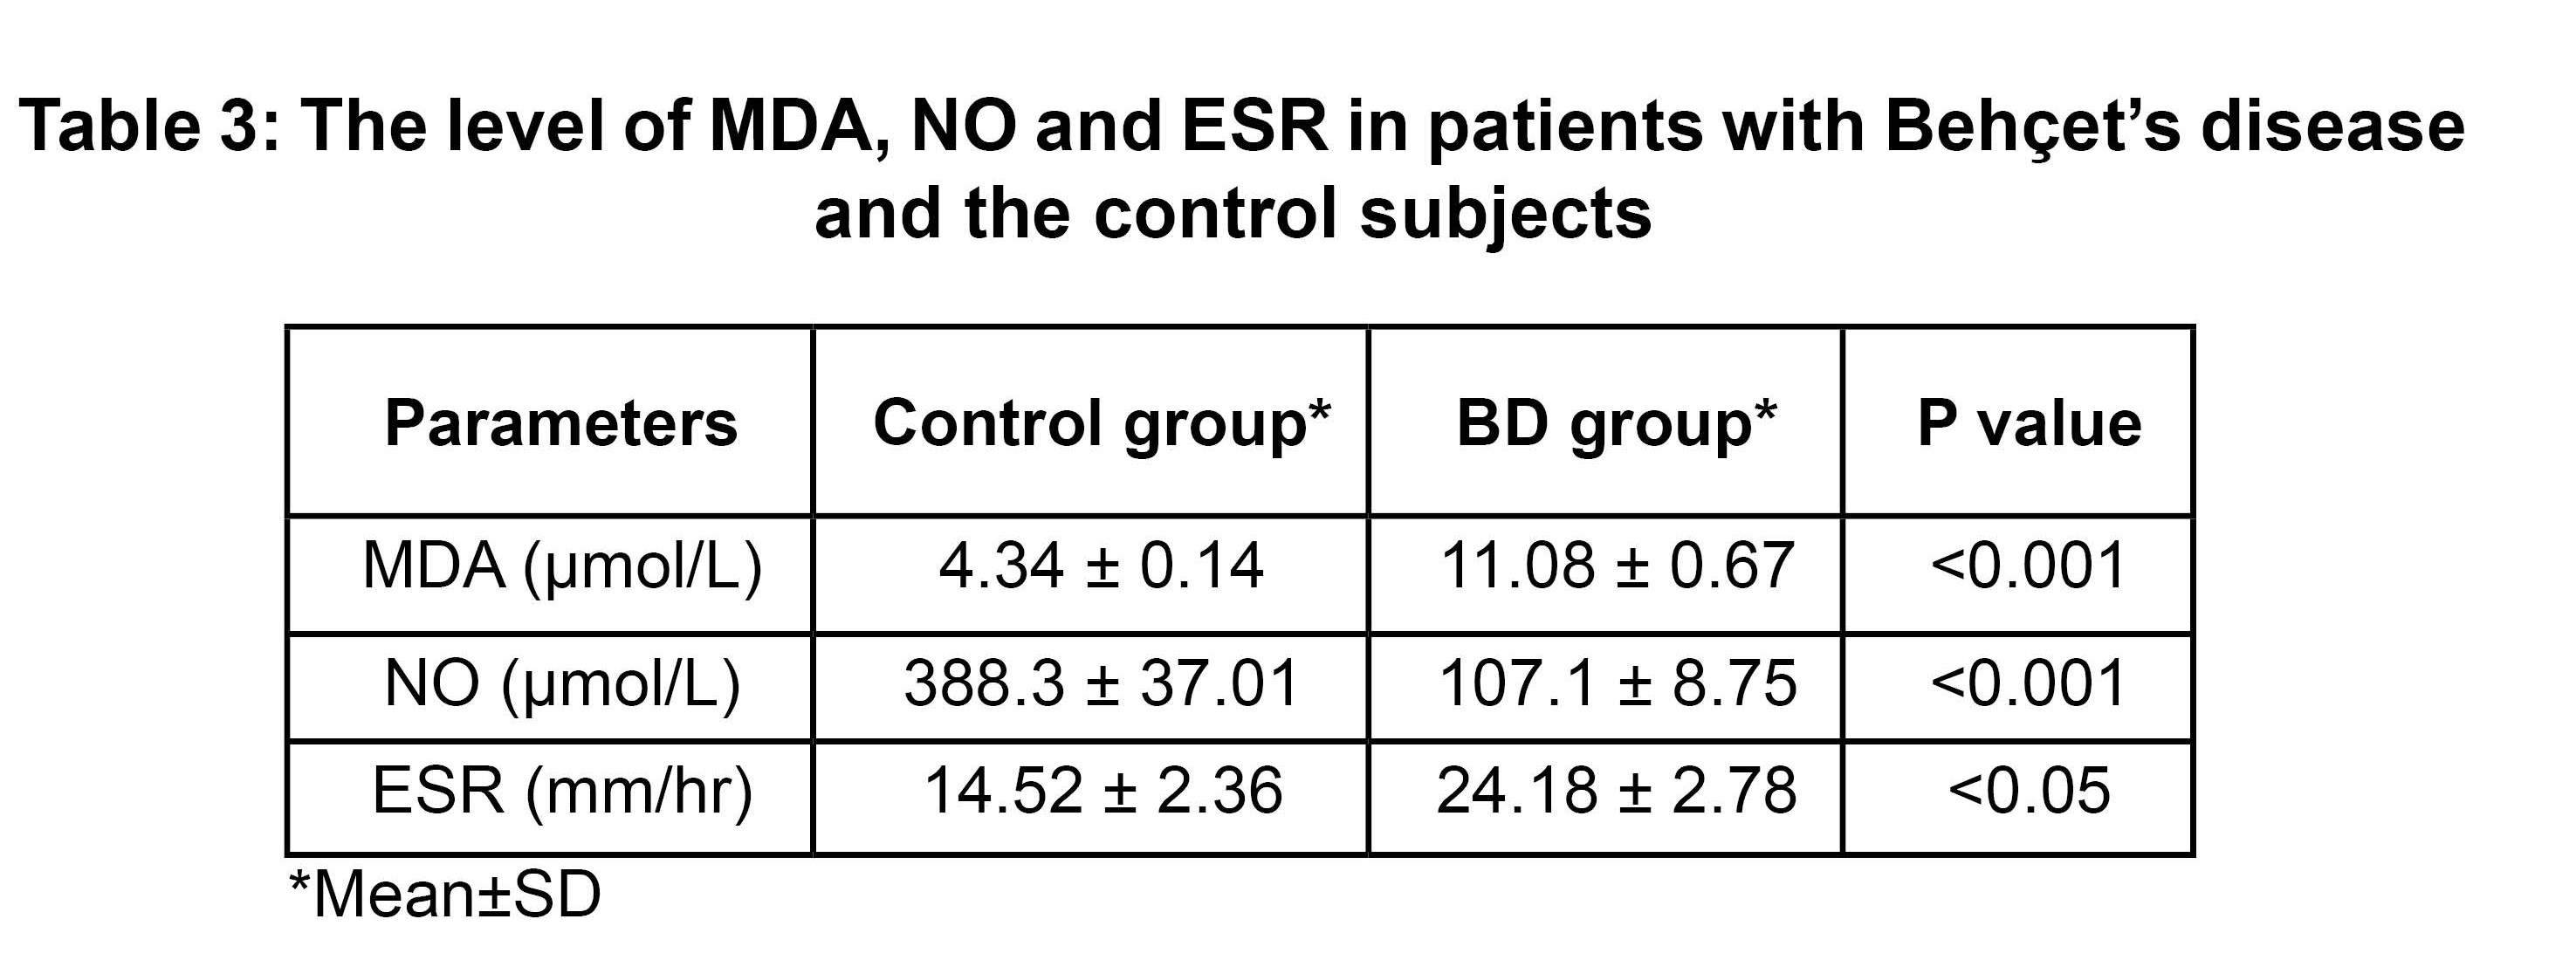 Oxidative stress markers in patients with Behcet's disease